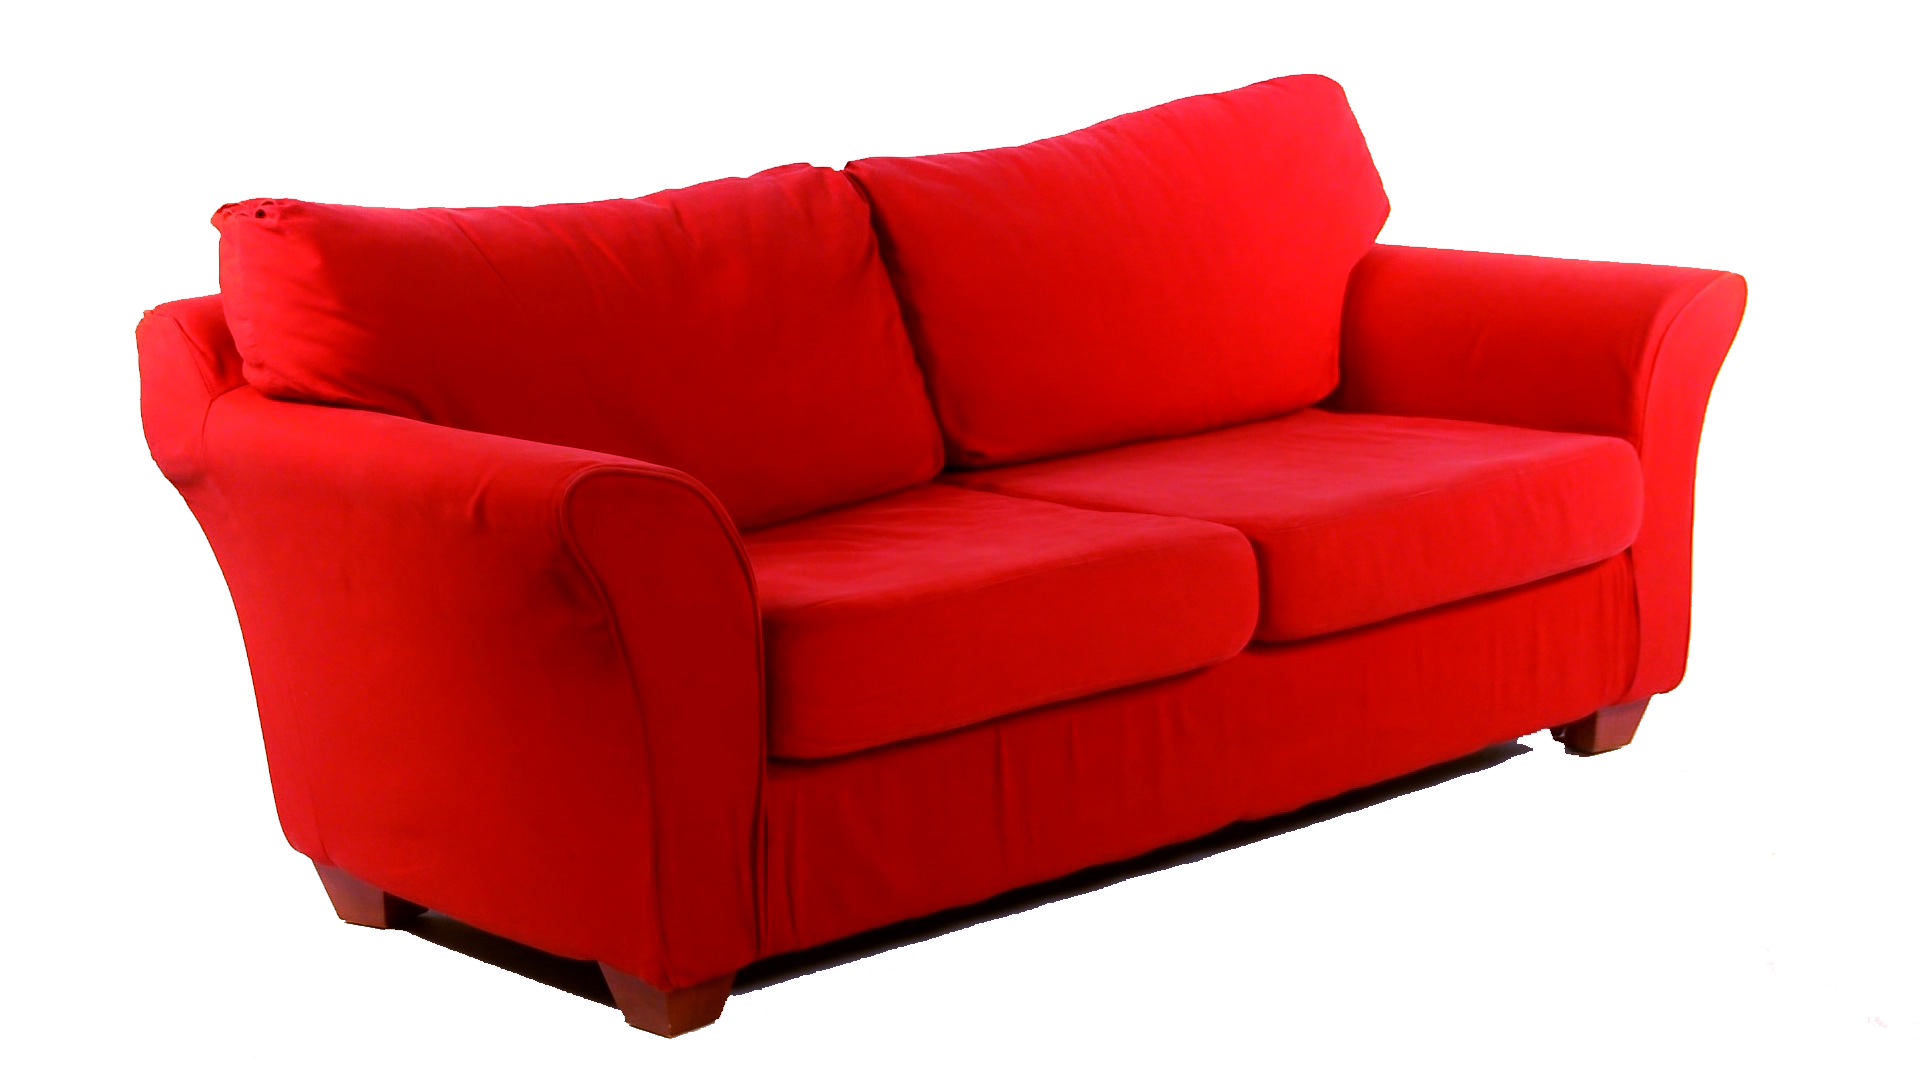 Transparent couch red. The amazing sofa recliner